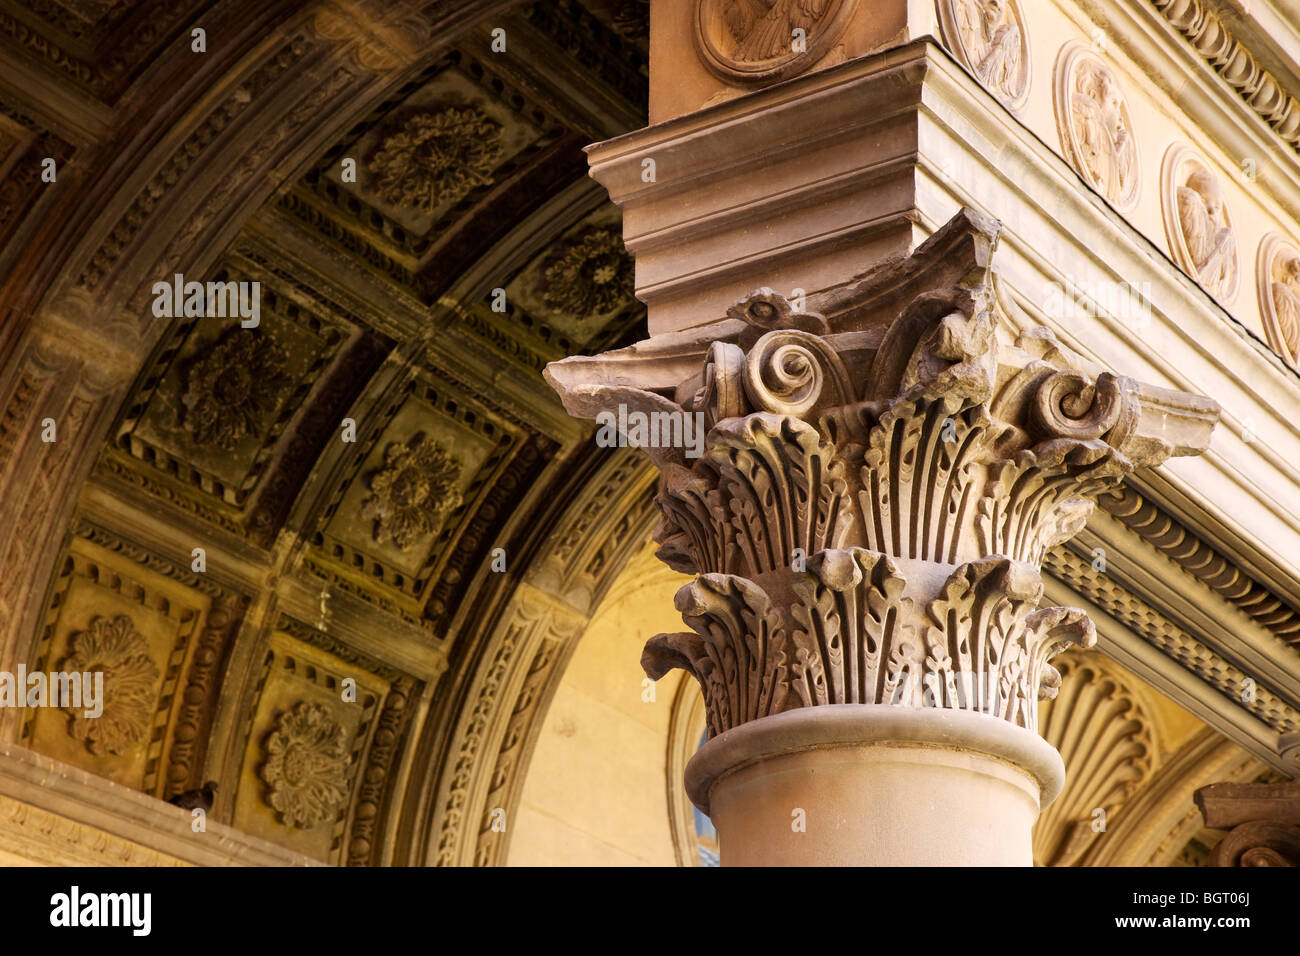 architectural detail in santa croce church in florence tuscany italy stock photo royalty free. Black Bedroom Furniture Sets. Home Design Ideas